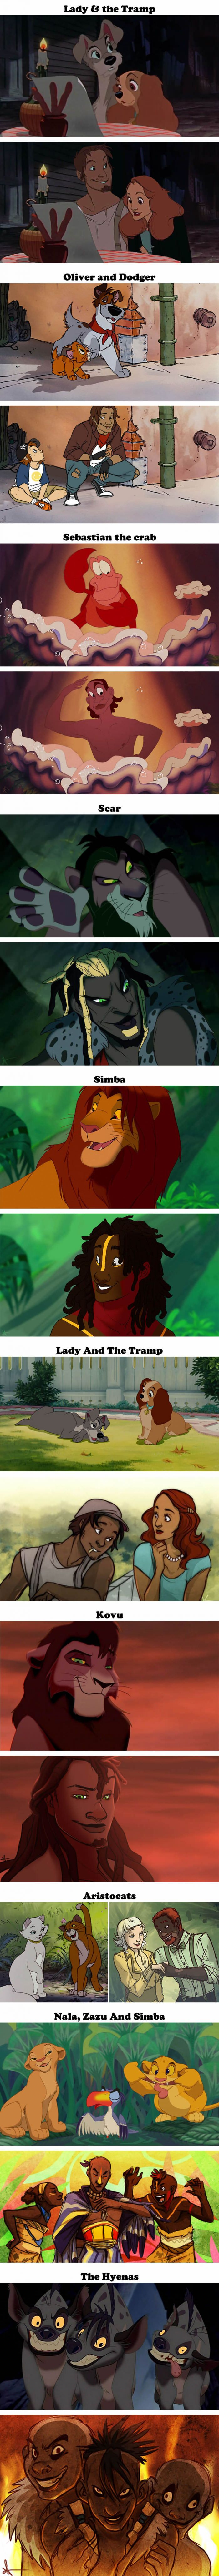 Famous Disney Characters As Ethnically Correct Humans (by pugletto) - 9GAG - I agree with some, but not all